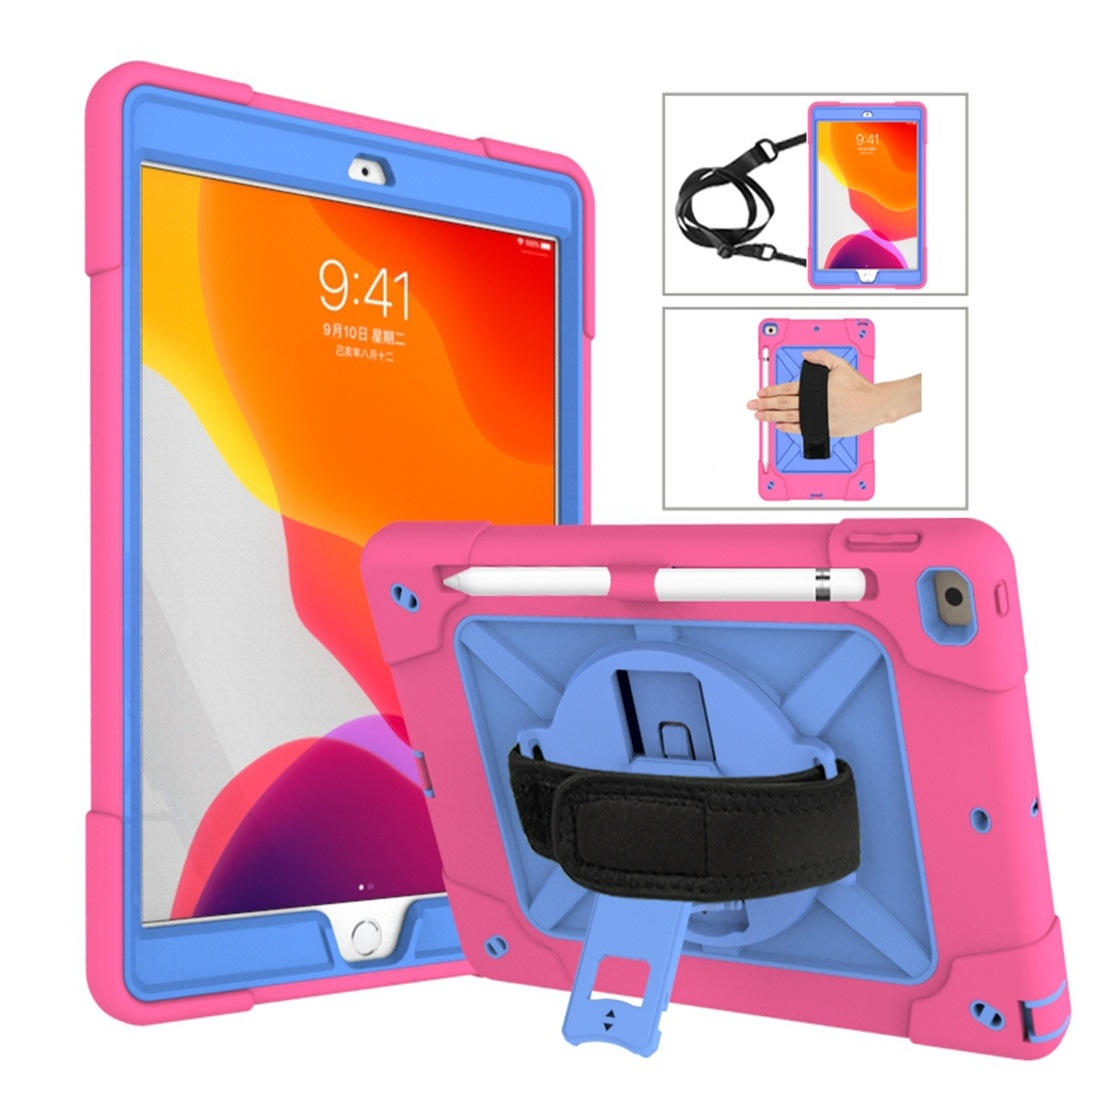 iPad 7th Generation Case (10.2 Inch) Contrasting Color Tough Durable Armor Case (Rose Red/Blue)